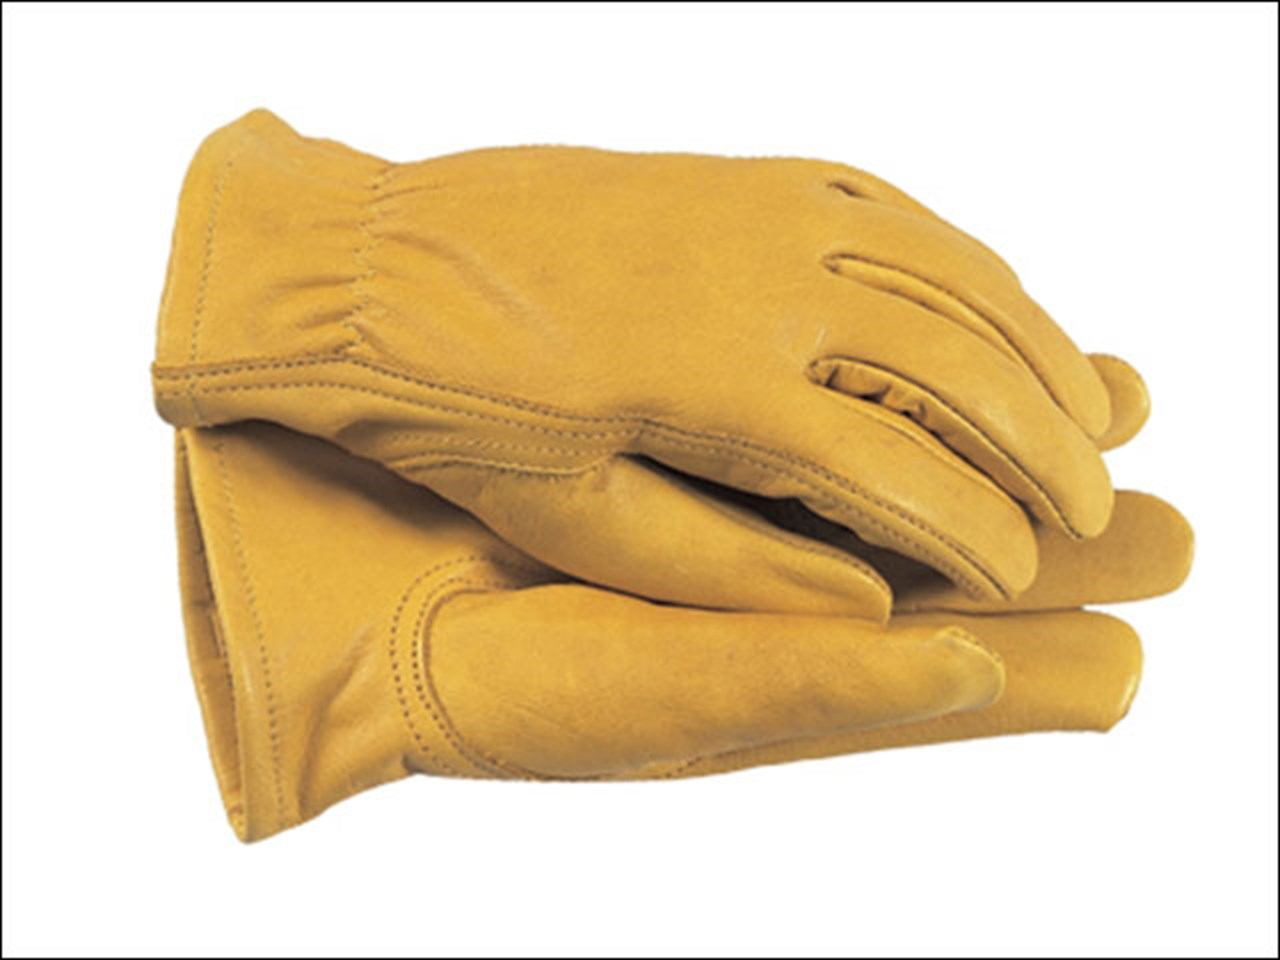 Ladies leather gloves yellow - Town And Country Tgl105m Premium Leather Gloves Ladies Medium